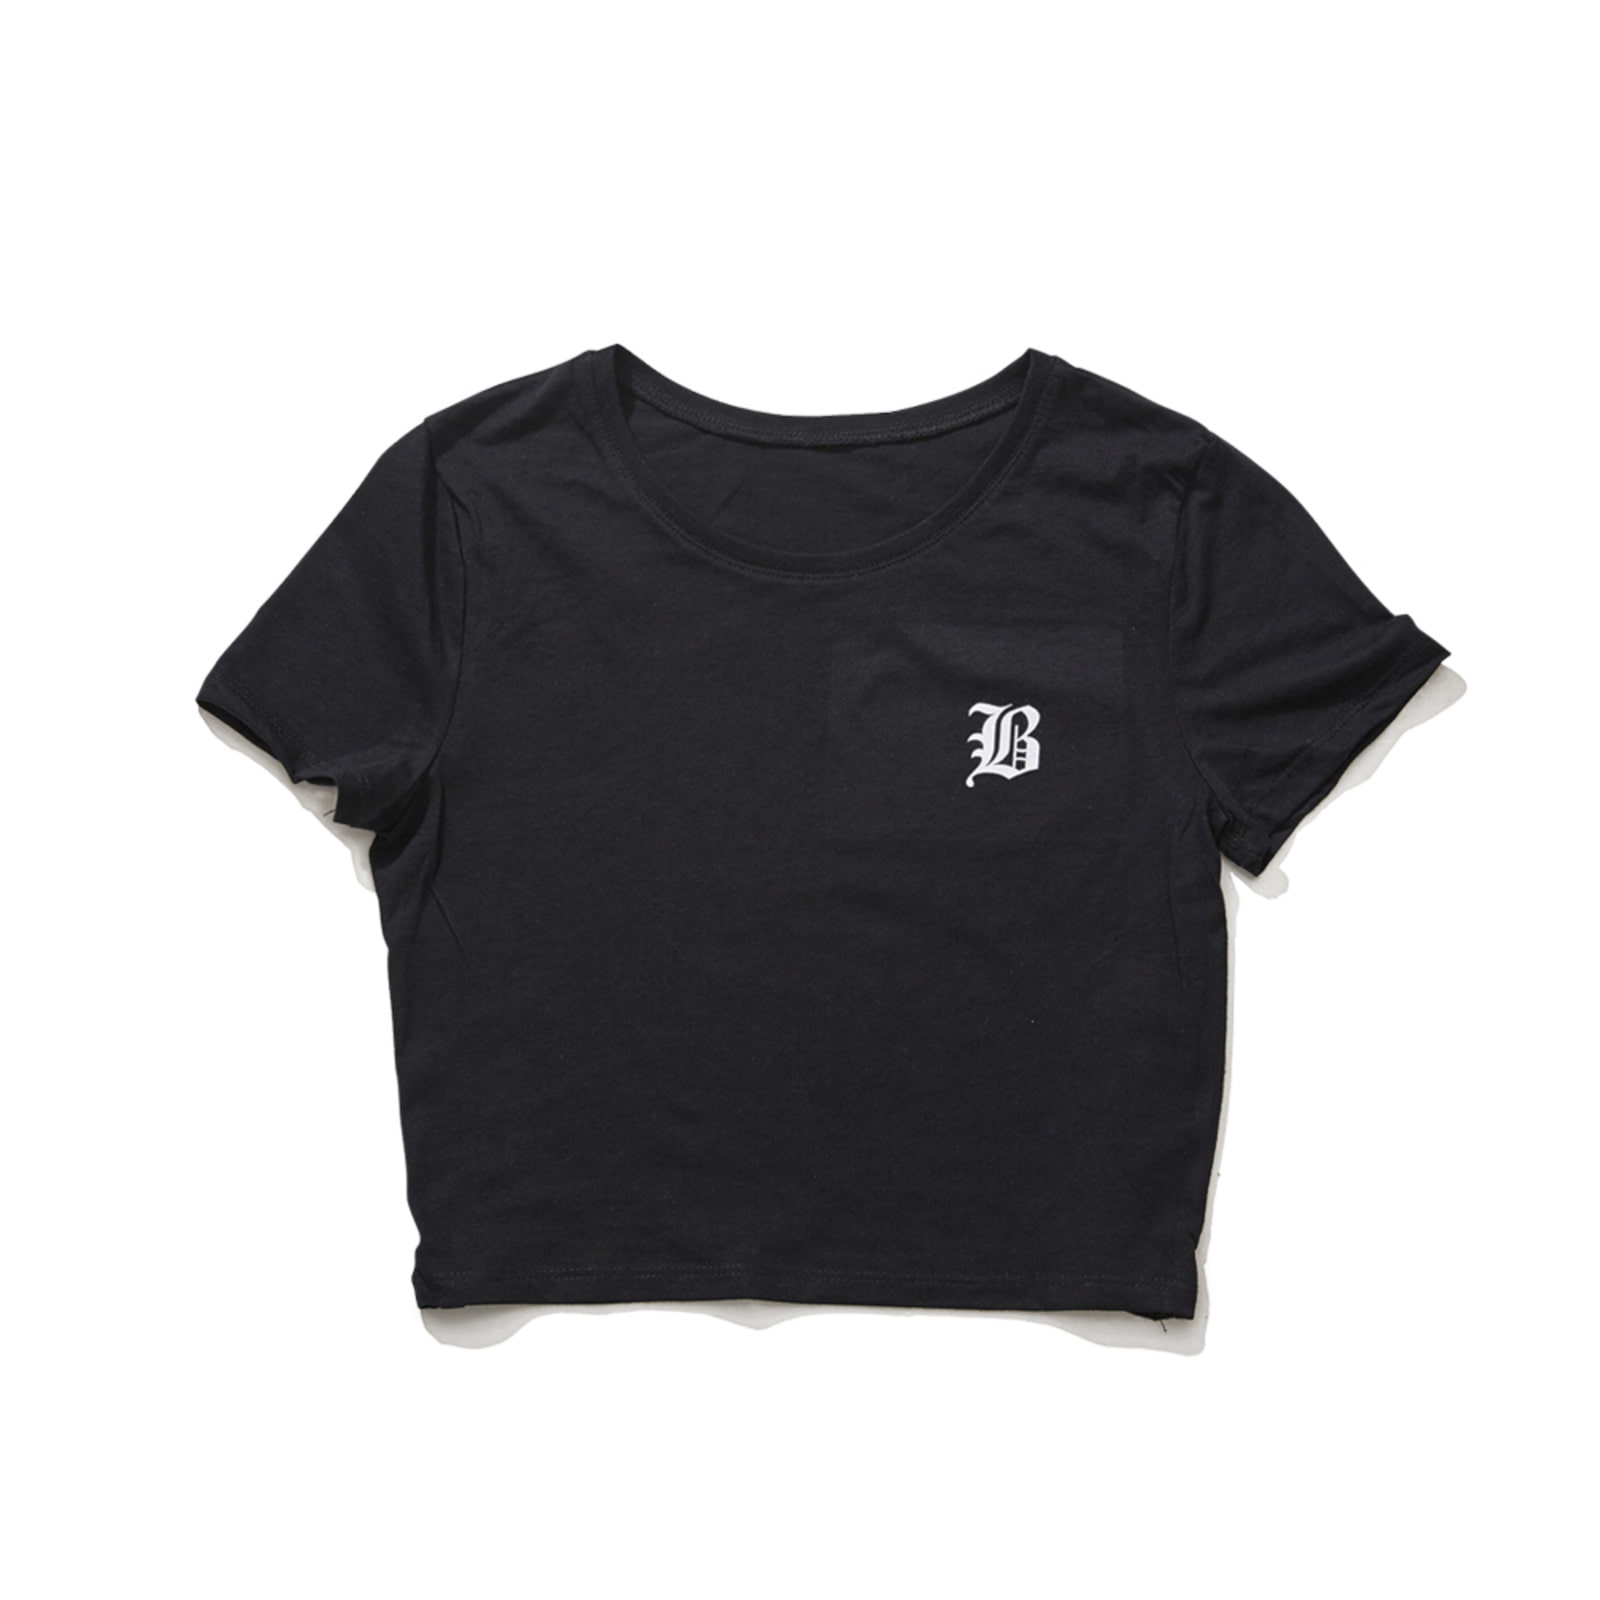 B CROP T-SHIRT BLACK